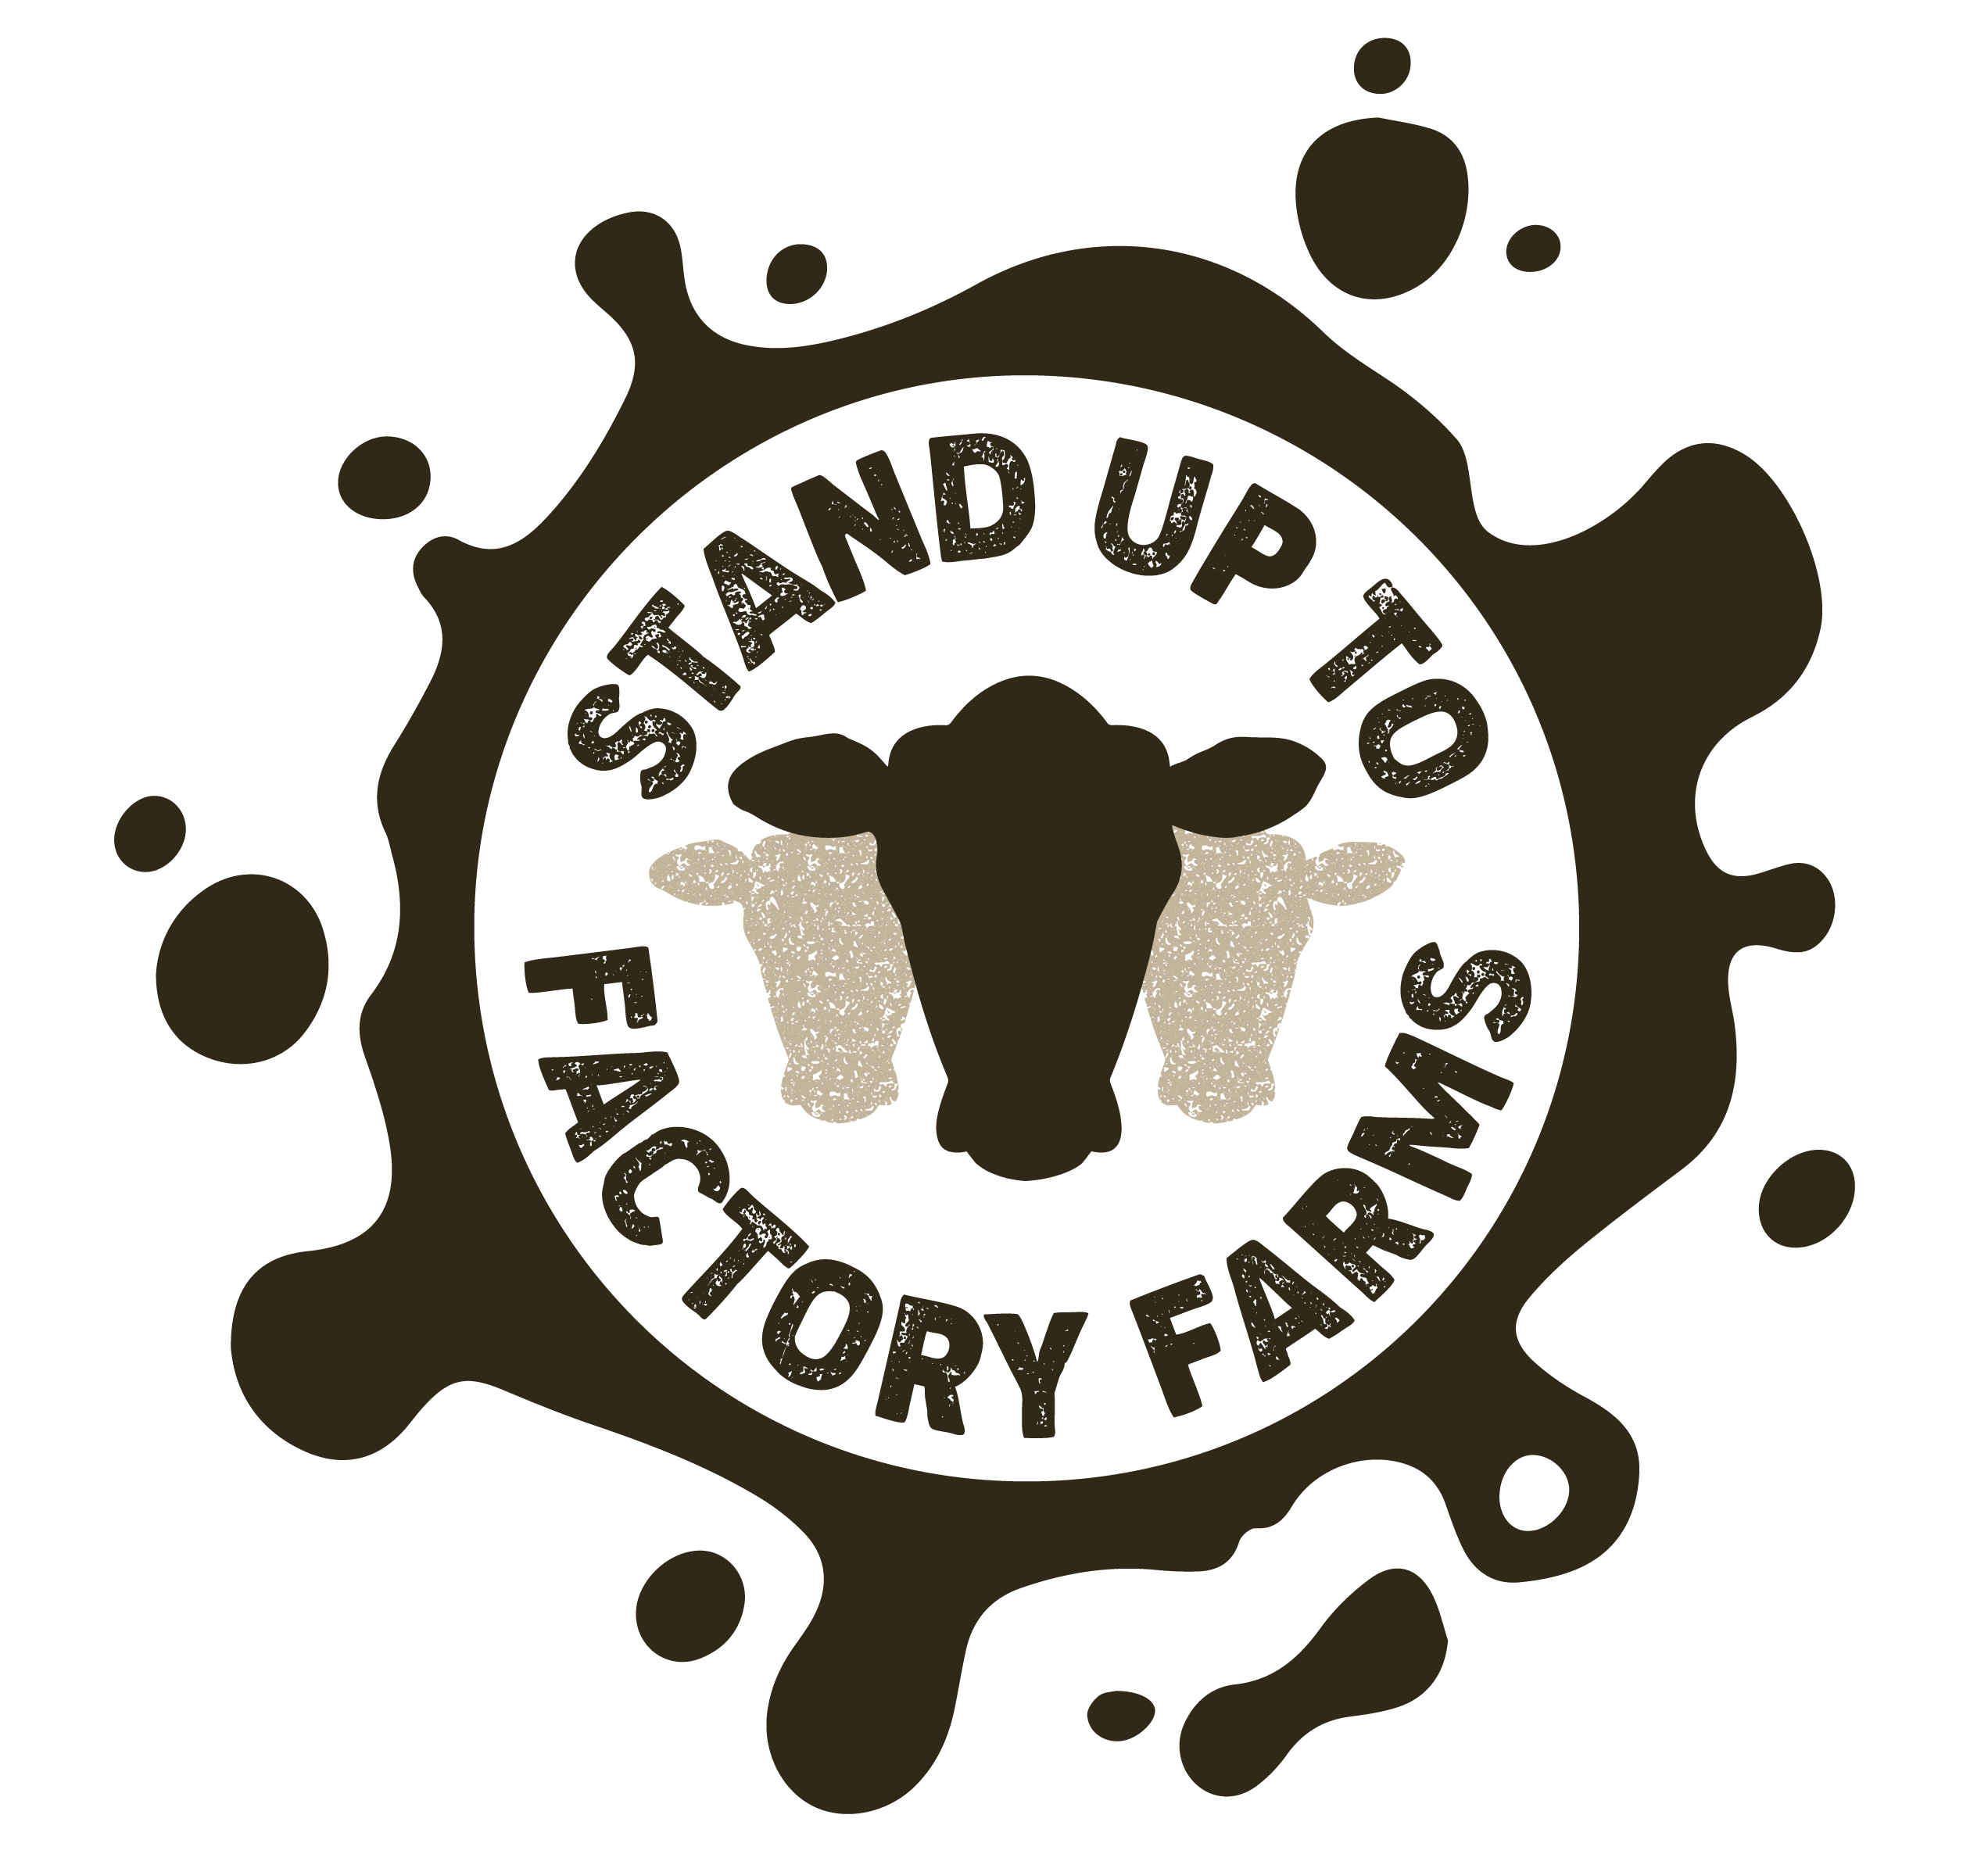 Stand Up to Factory Farms